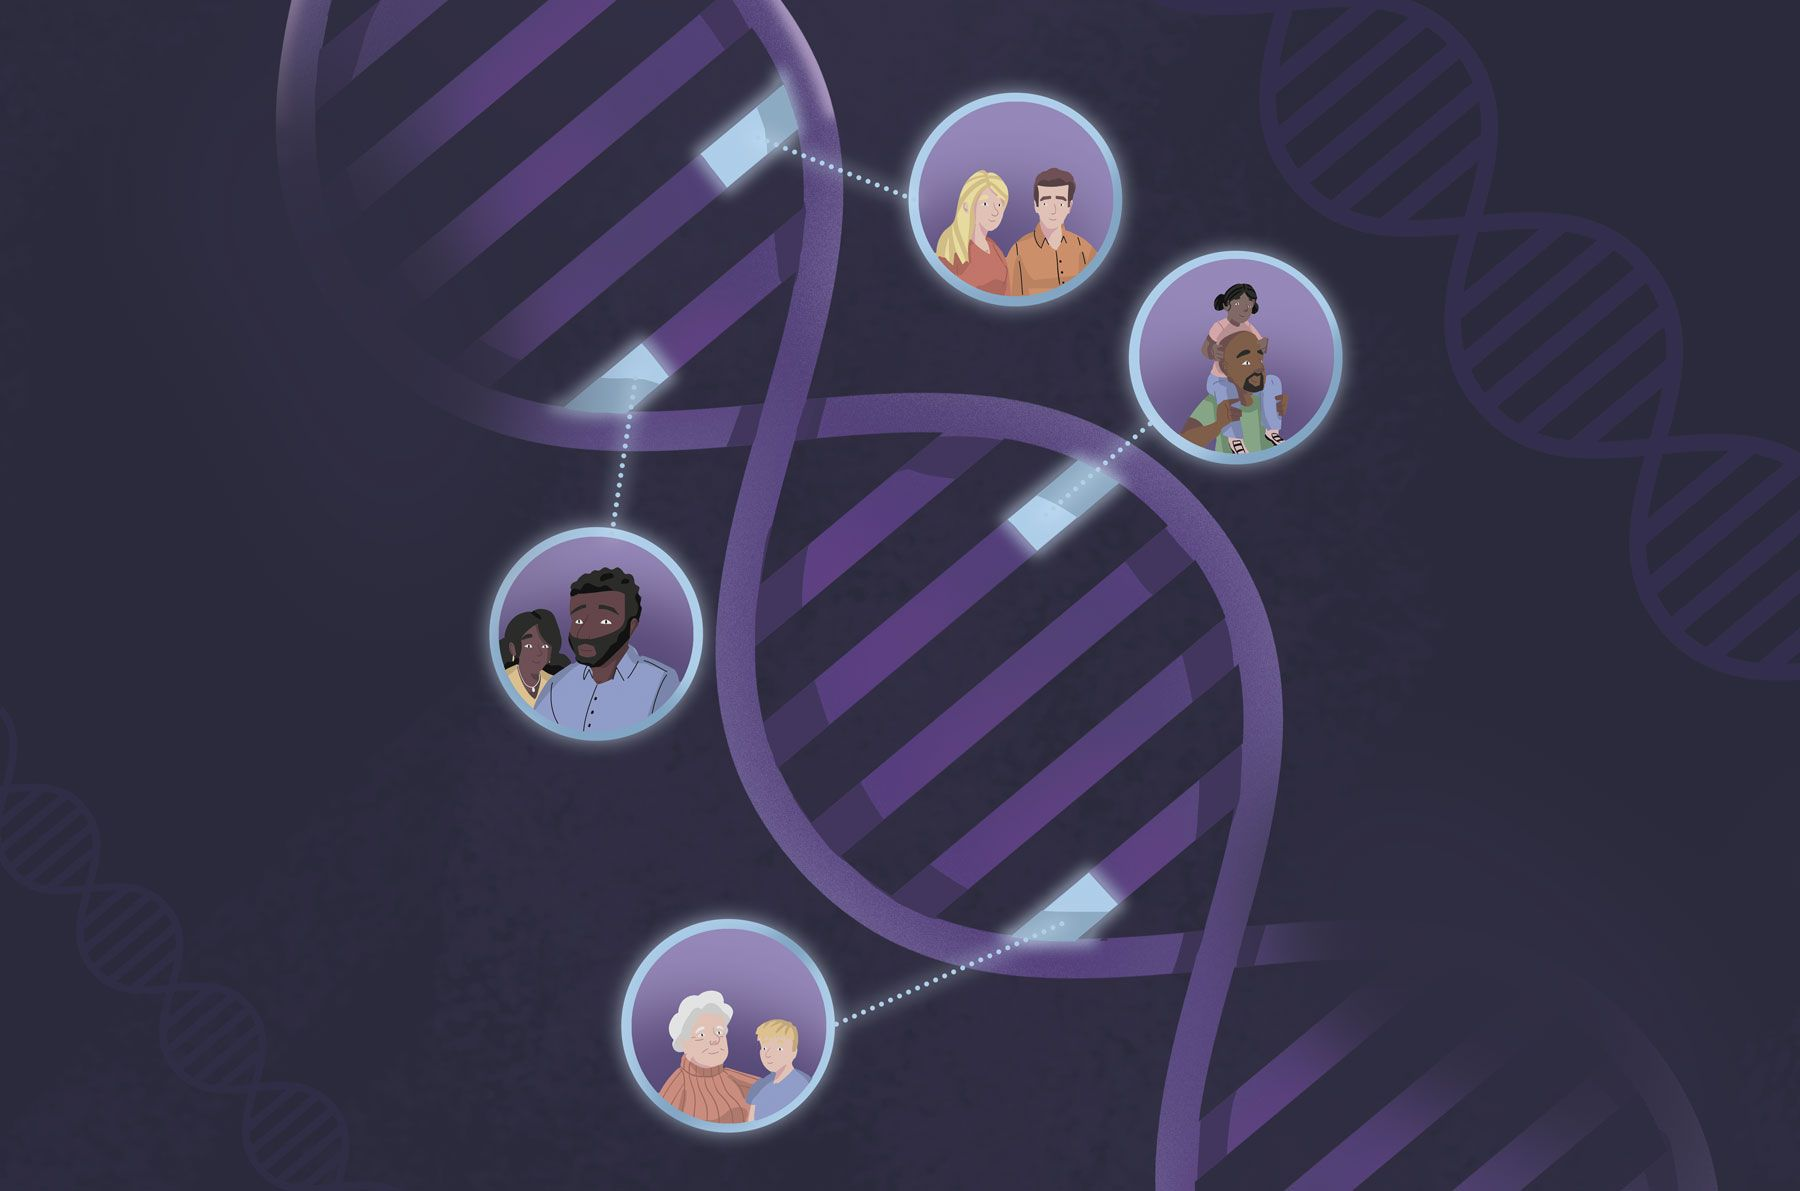 Illustration: DNA double-helix, with families highlighted as making up the strands